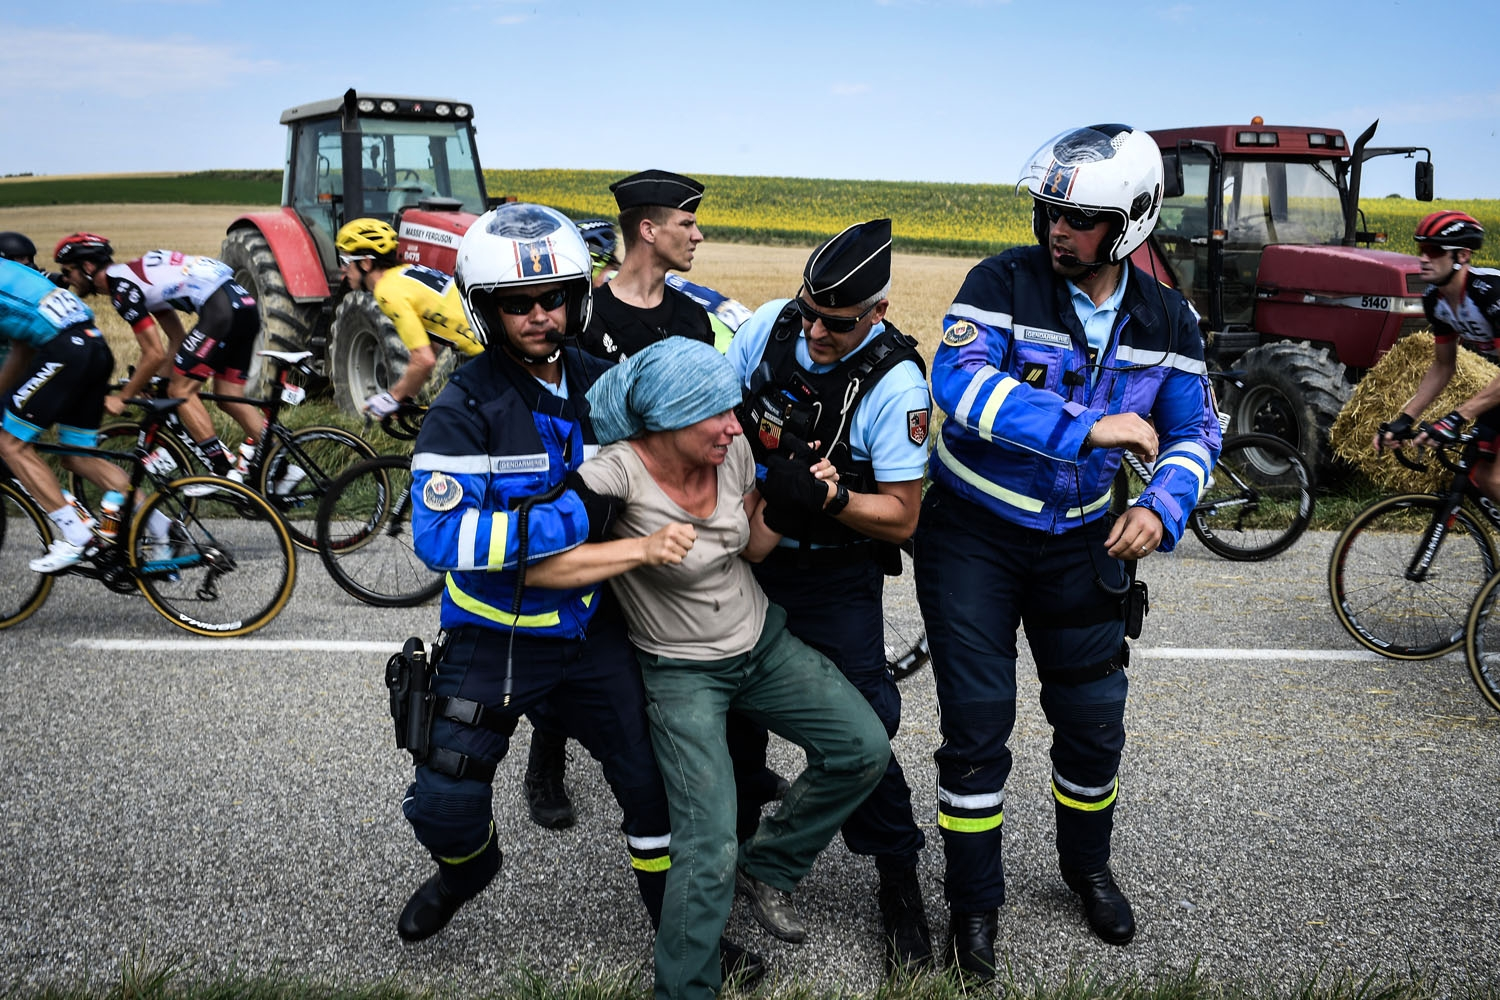 Gendarmes detain a protester as Great Britain's Geraint Thomas (3rdL), wearing the overall leader's yellow jersey, and the pack ride behind, during a farmers' protest who attempted to block the stage's route, during the 16th stage of the 105th edition of